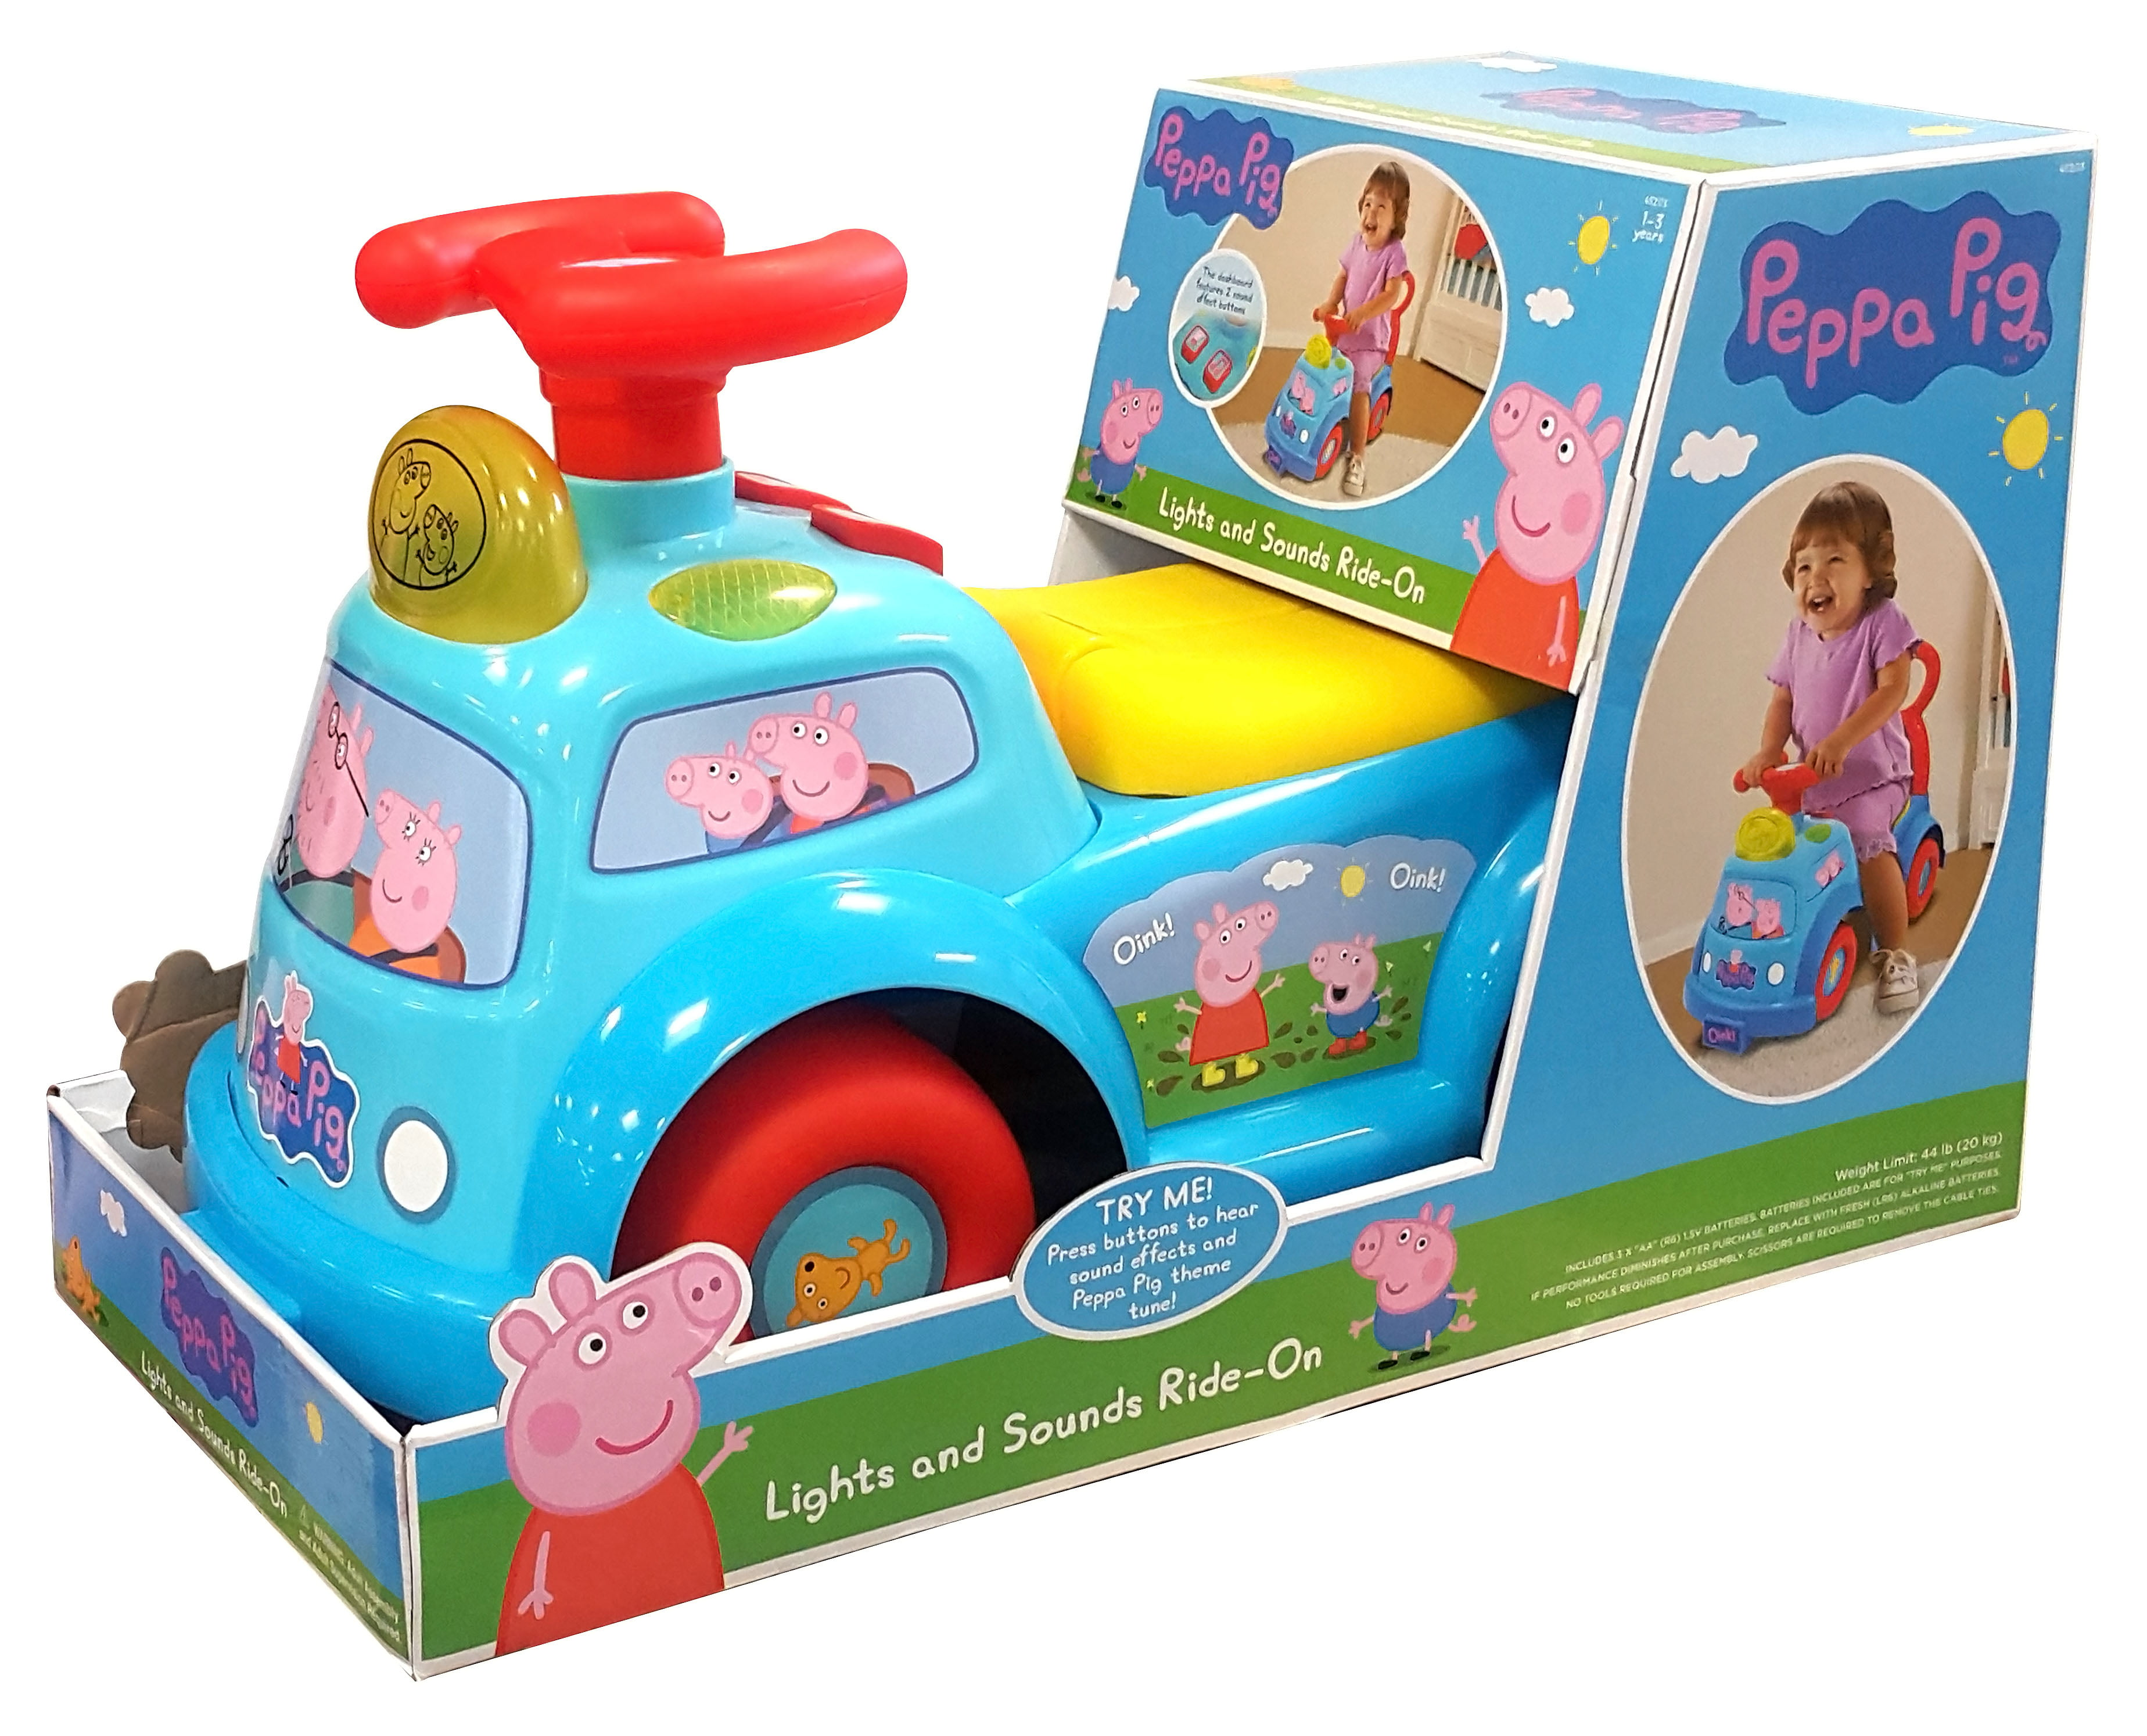 Peppa Pig Lights and Sounds Ride-On - Walmart.com